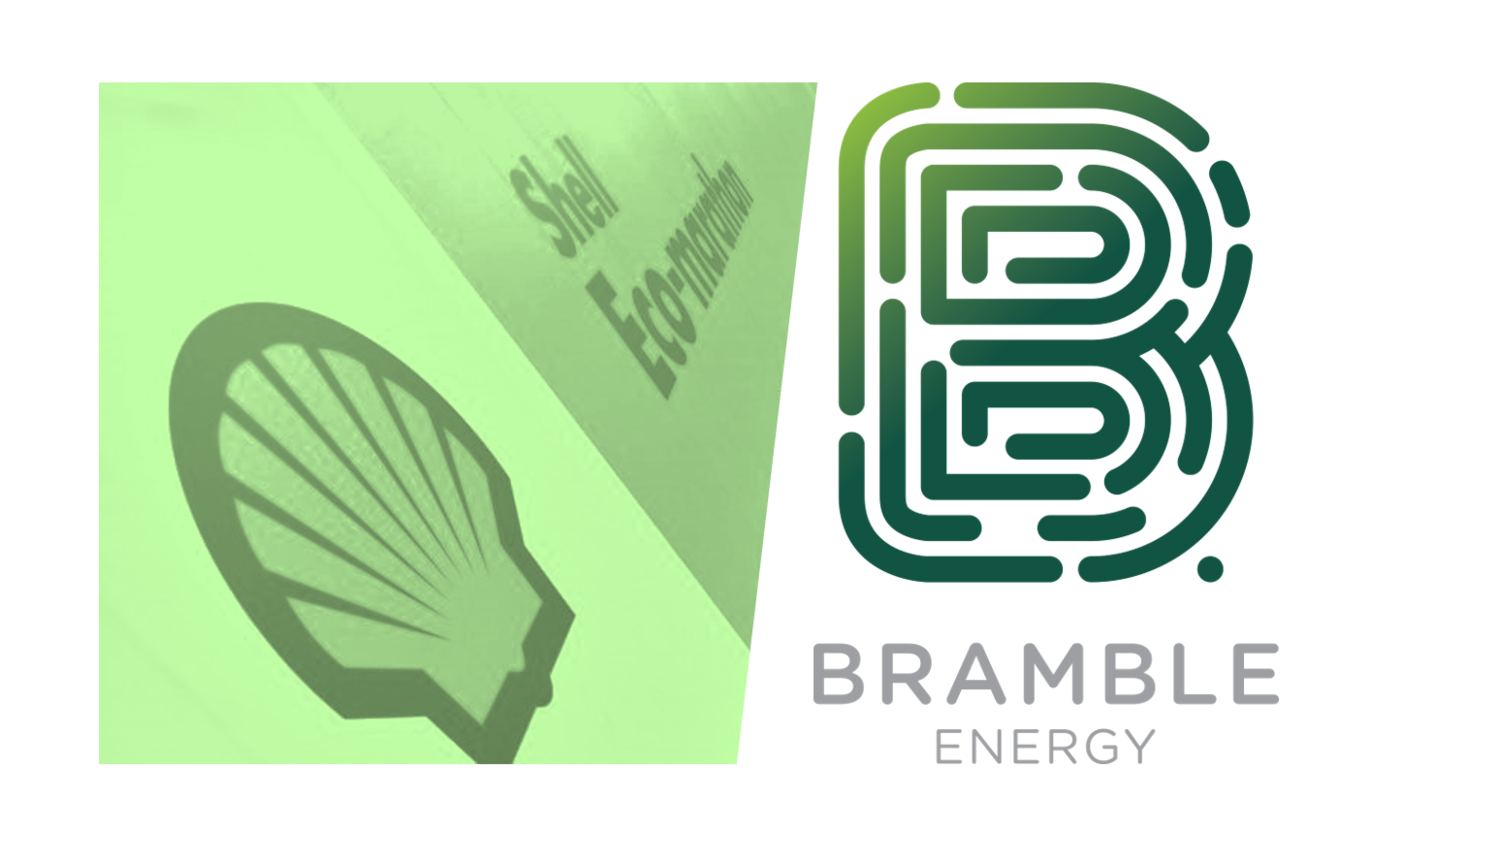 Bramble+Energy+fuel+cell+shell+eco+marathon_G.png